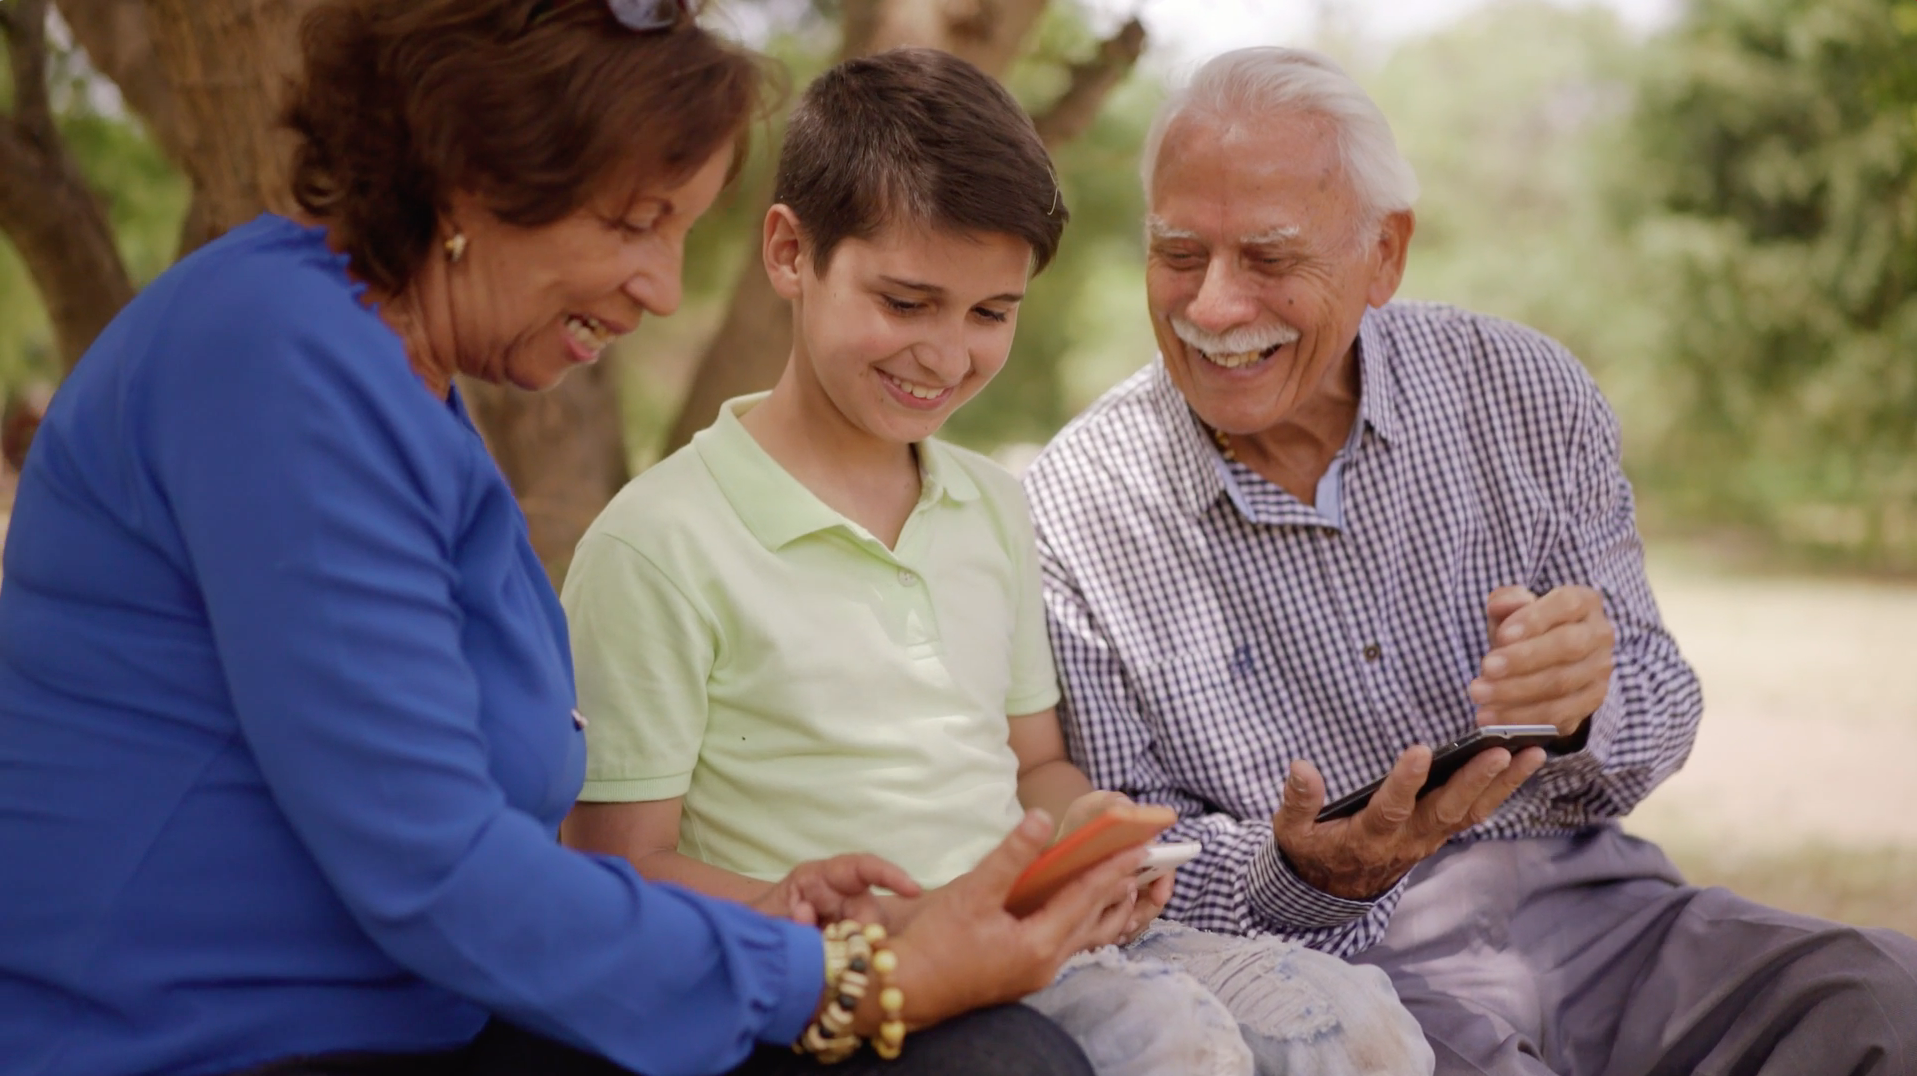 Grandparents ask grandson for help entering Family Medical History into ICmed mobile app